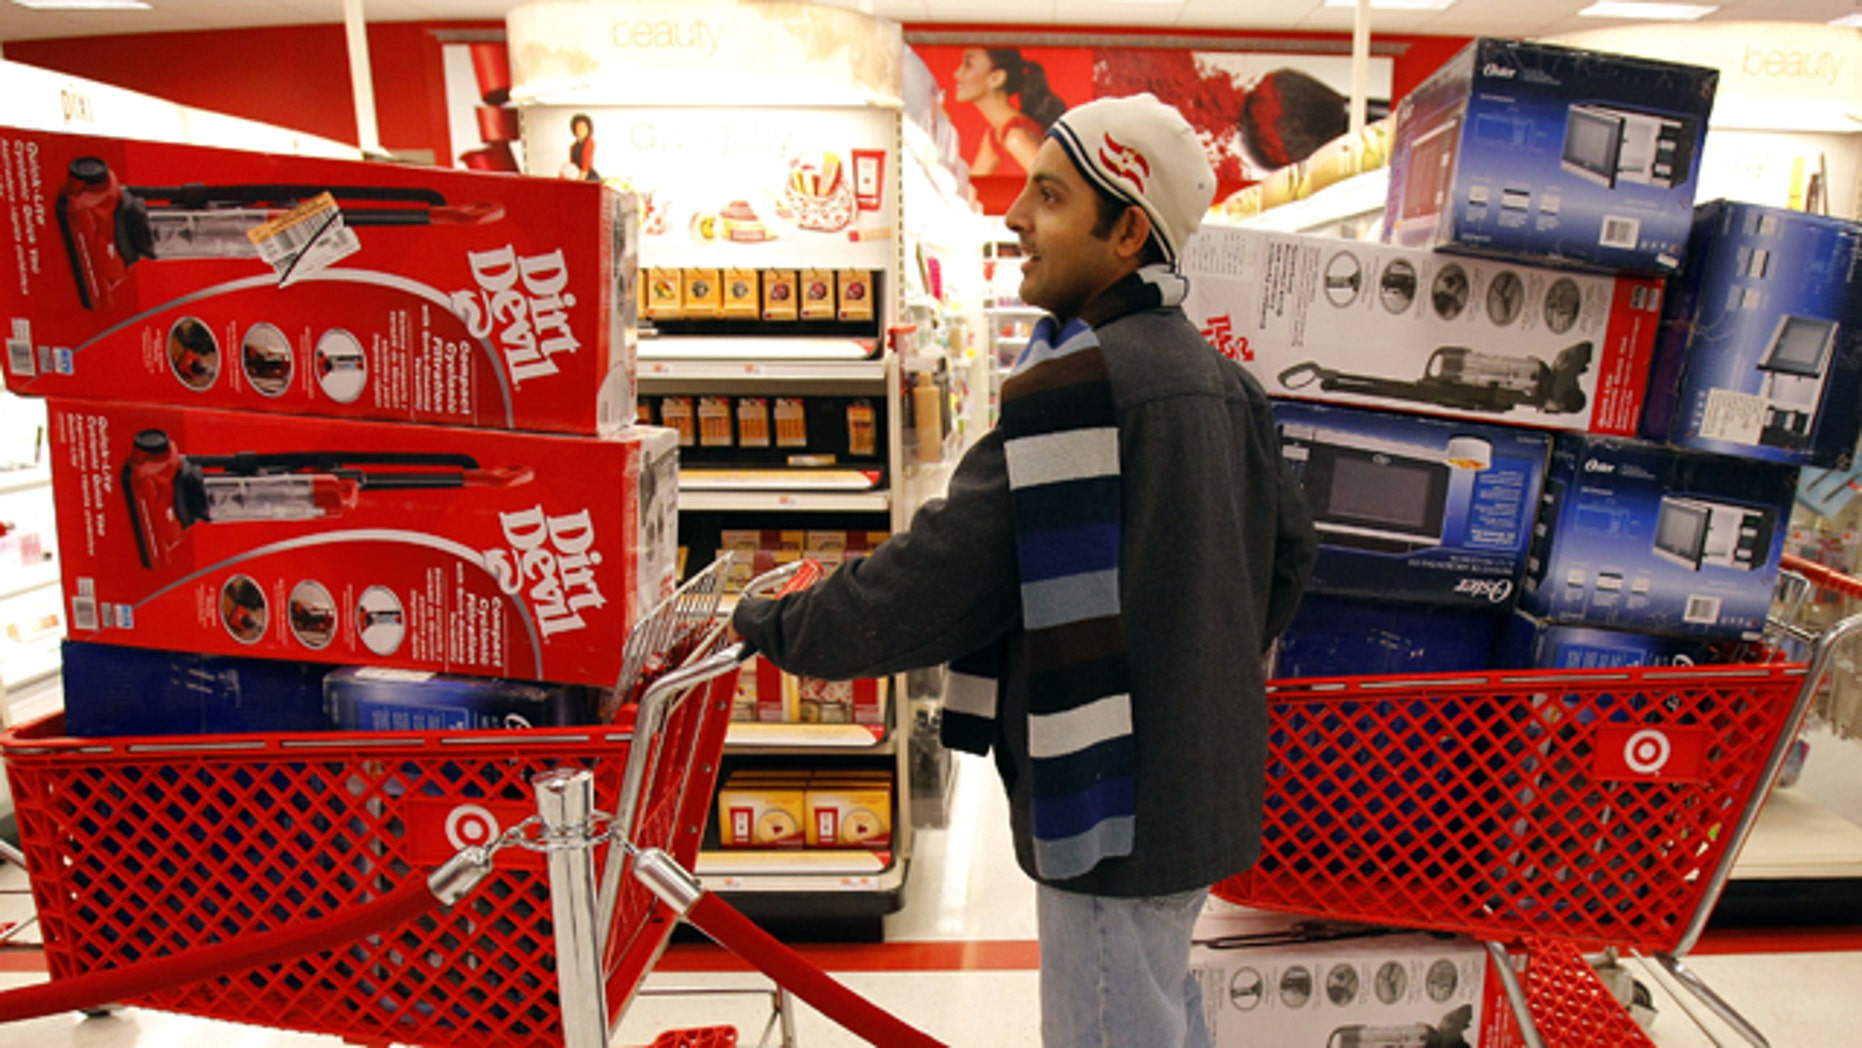 Nov. 26: A man waits in line to check out at a Target store on Black Friday in Lanesborough, Mass.